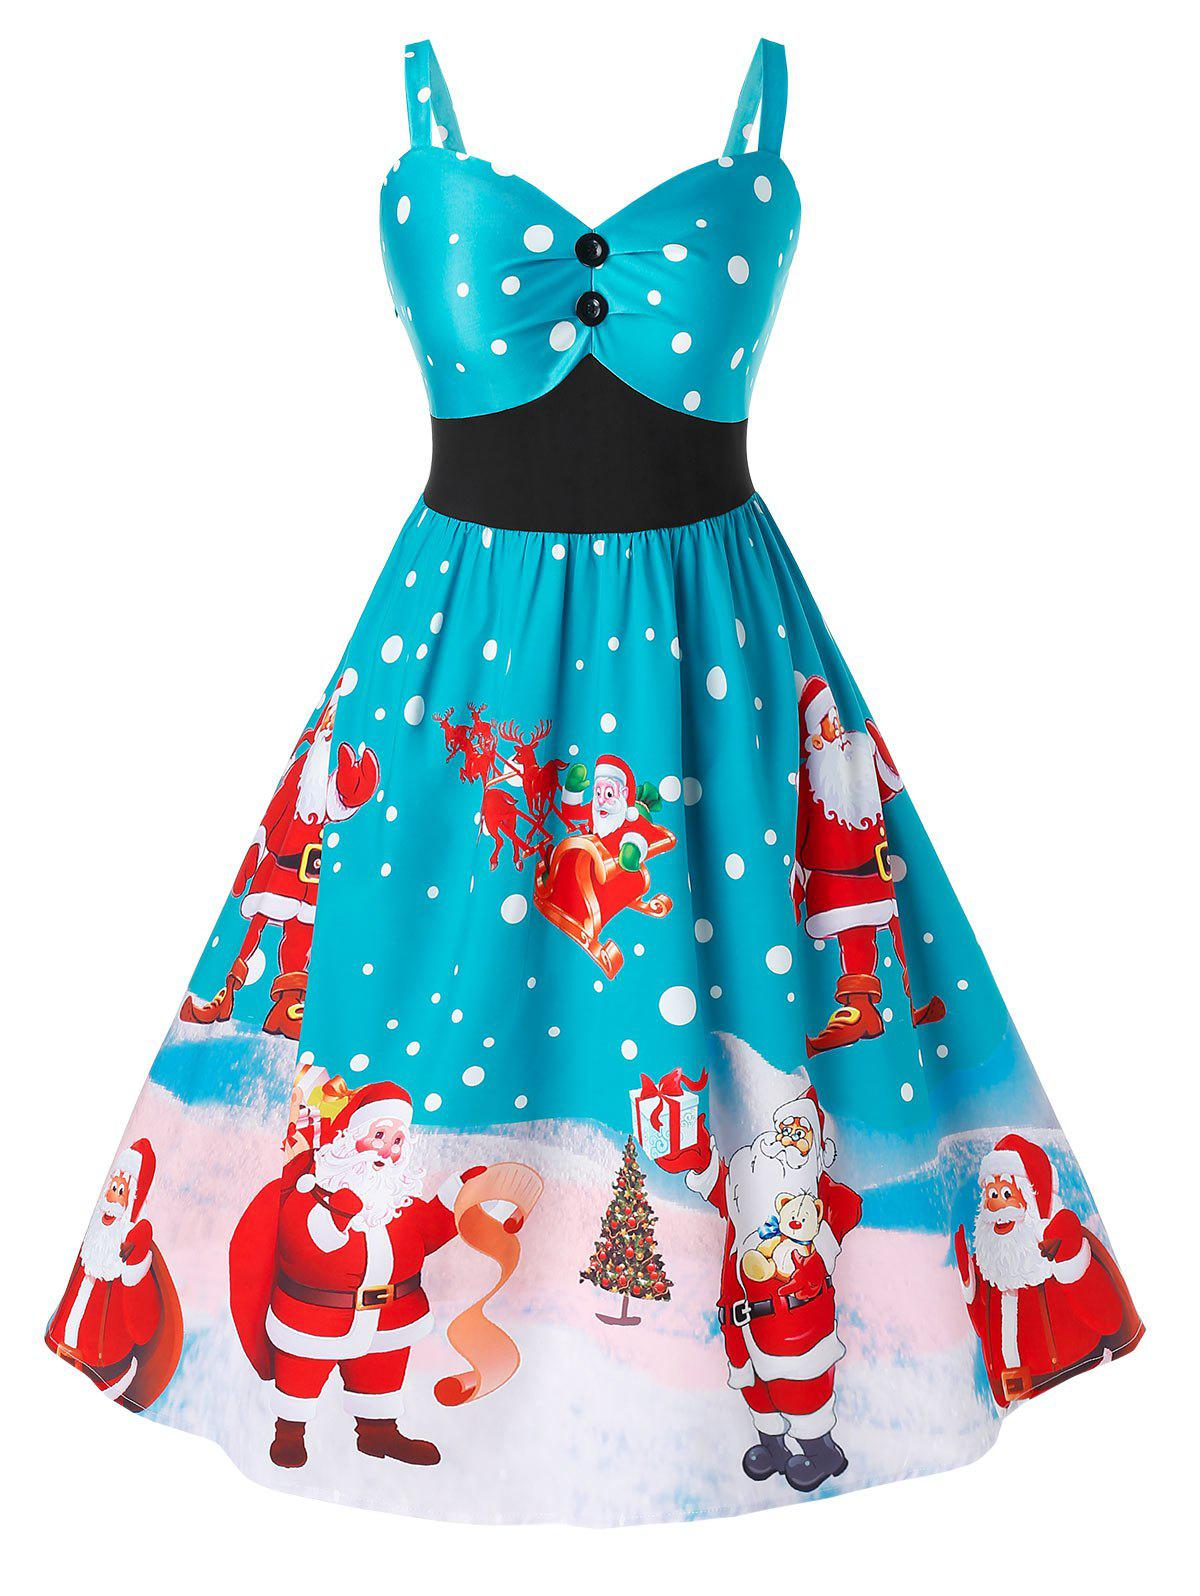 Plus Size Christmas Vintage Santa Claus Print Party Dress - SILK BLUE 4X